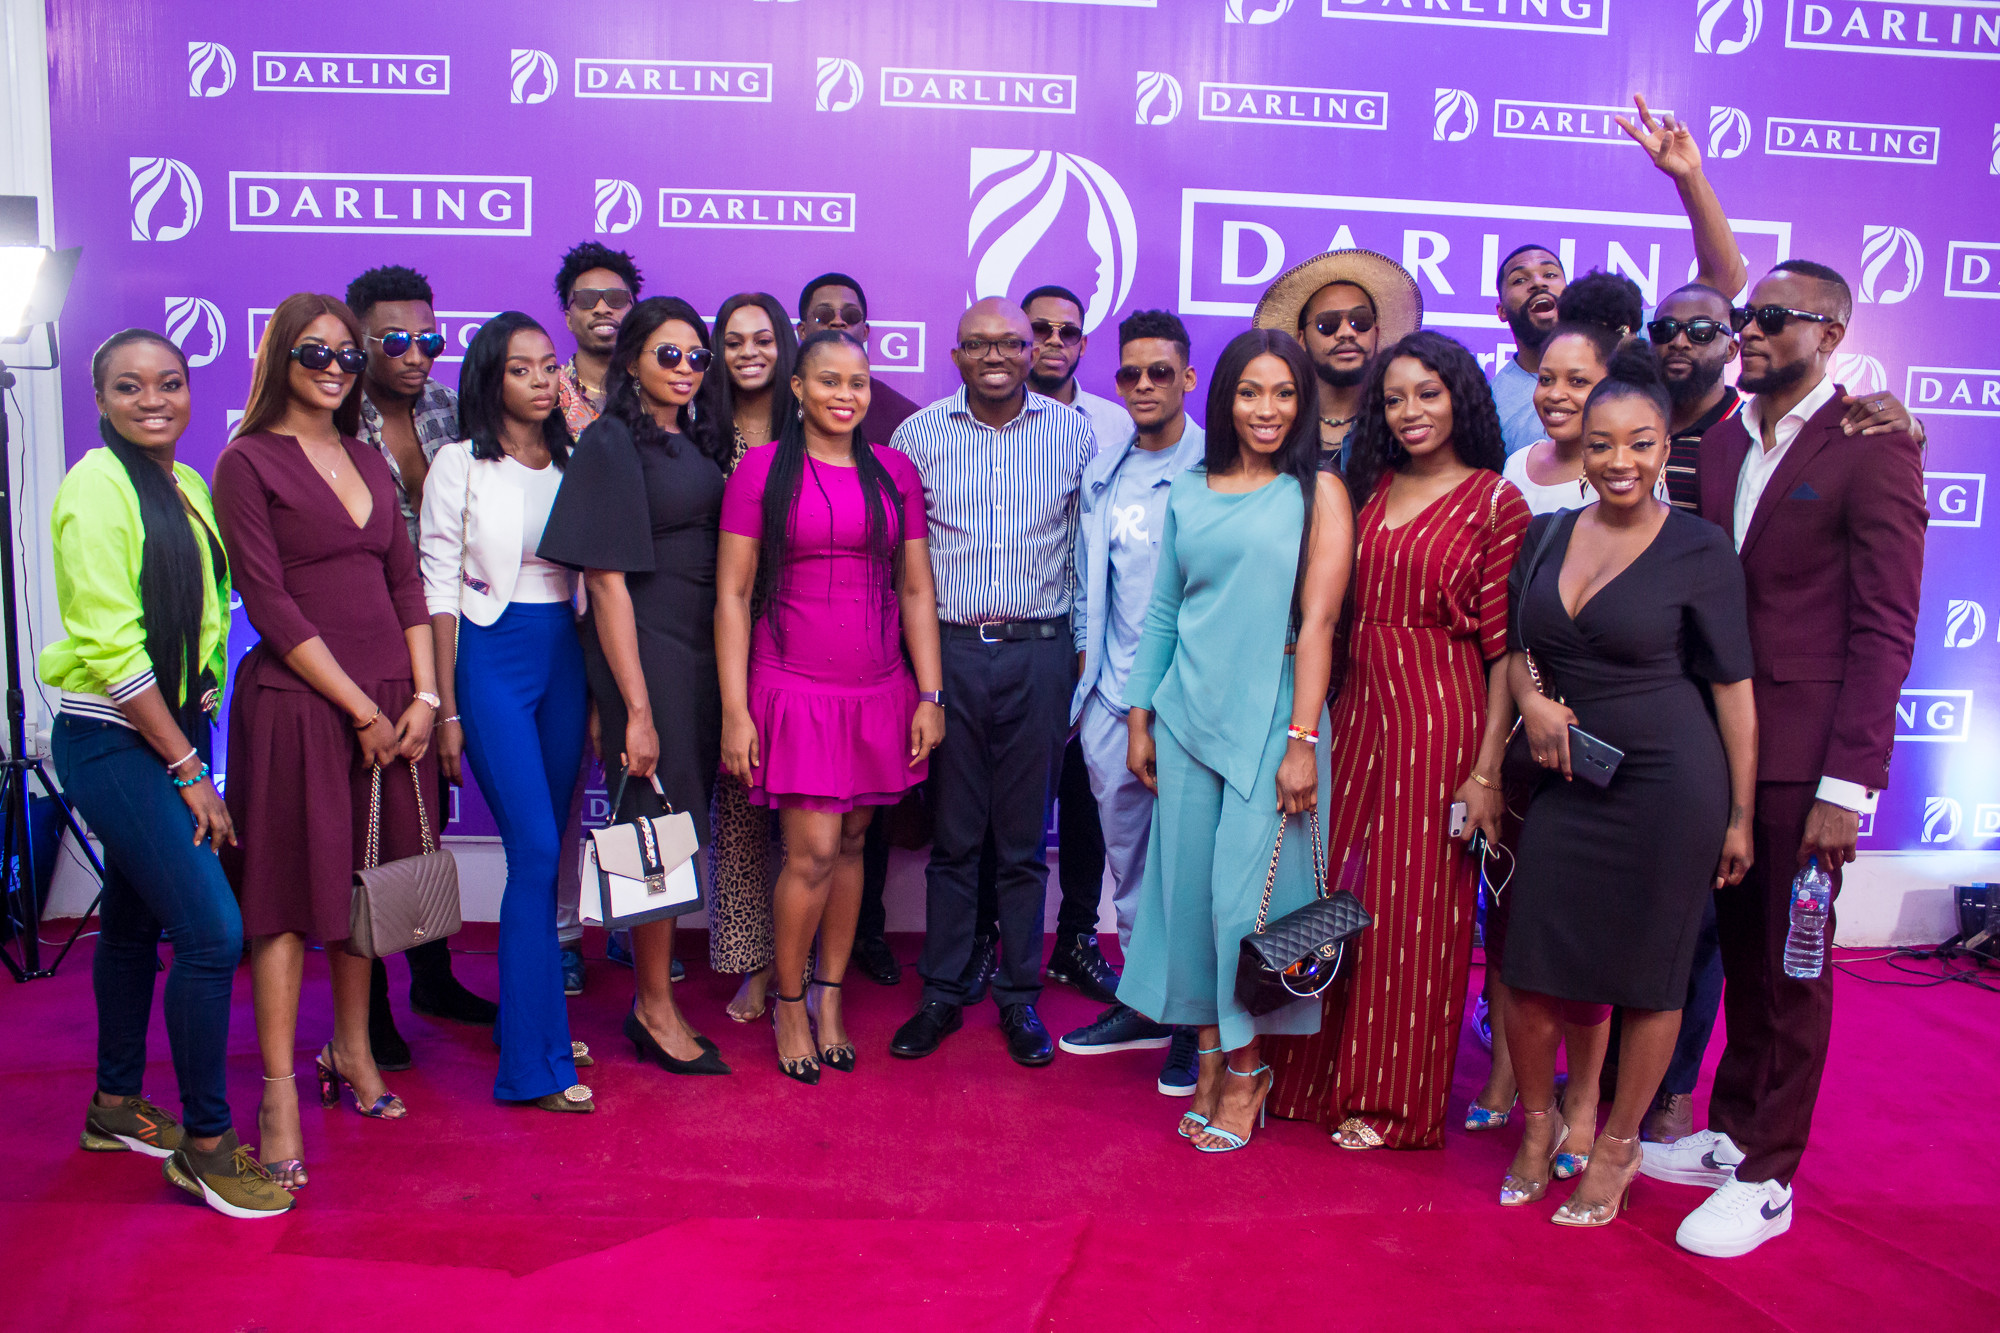 Photo of BBNaija: Darling hosts housemates; redeems cash prizes for Darling task winners